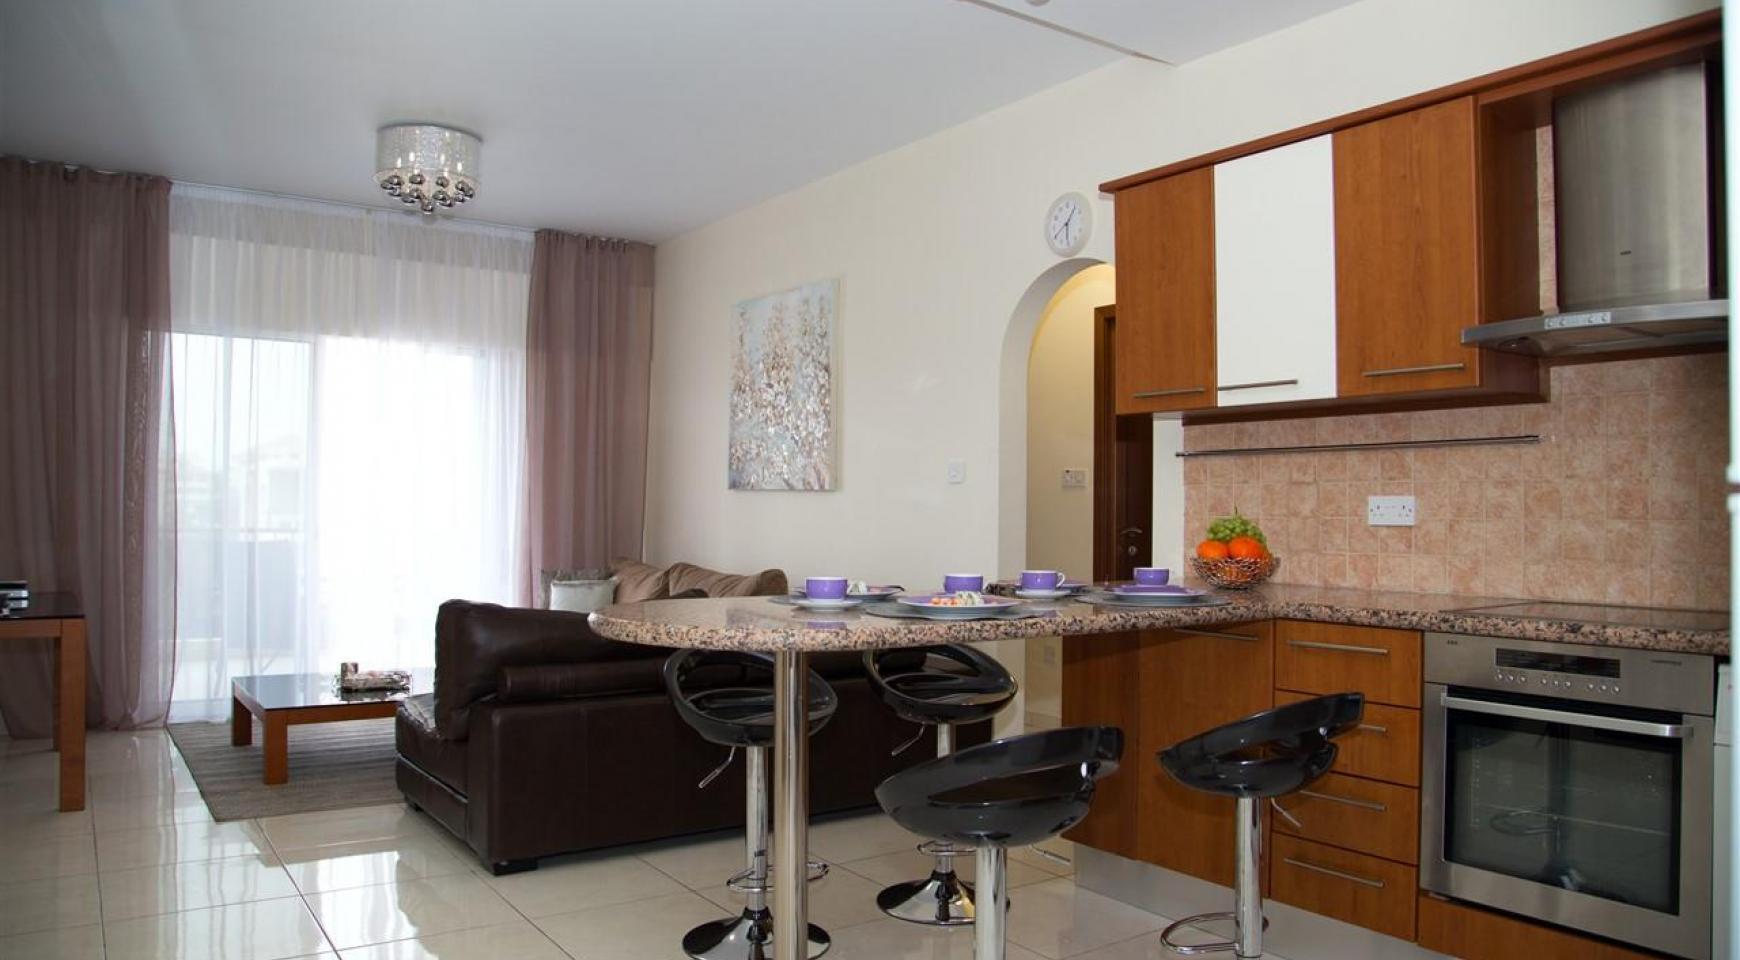 2 Bedroom Apartment in the Complex near the Sea - 9